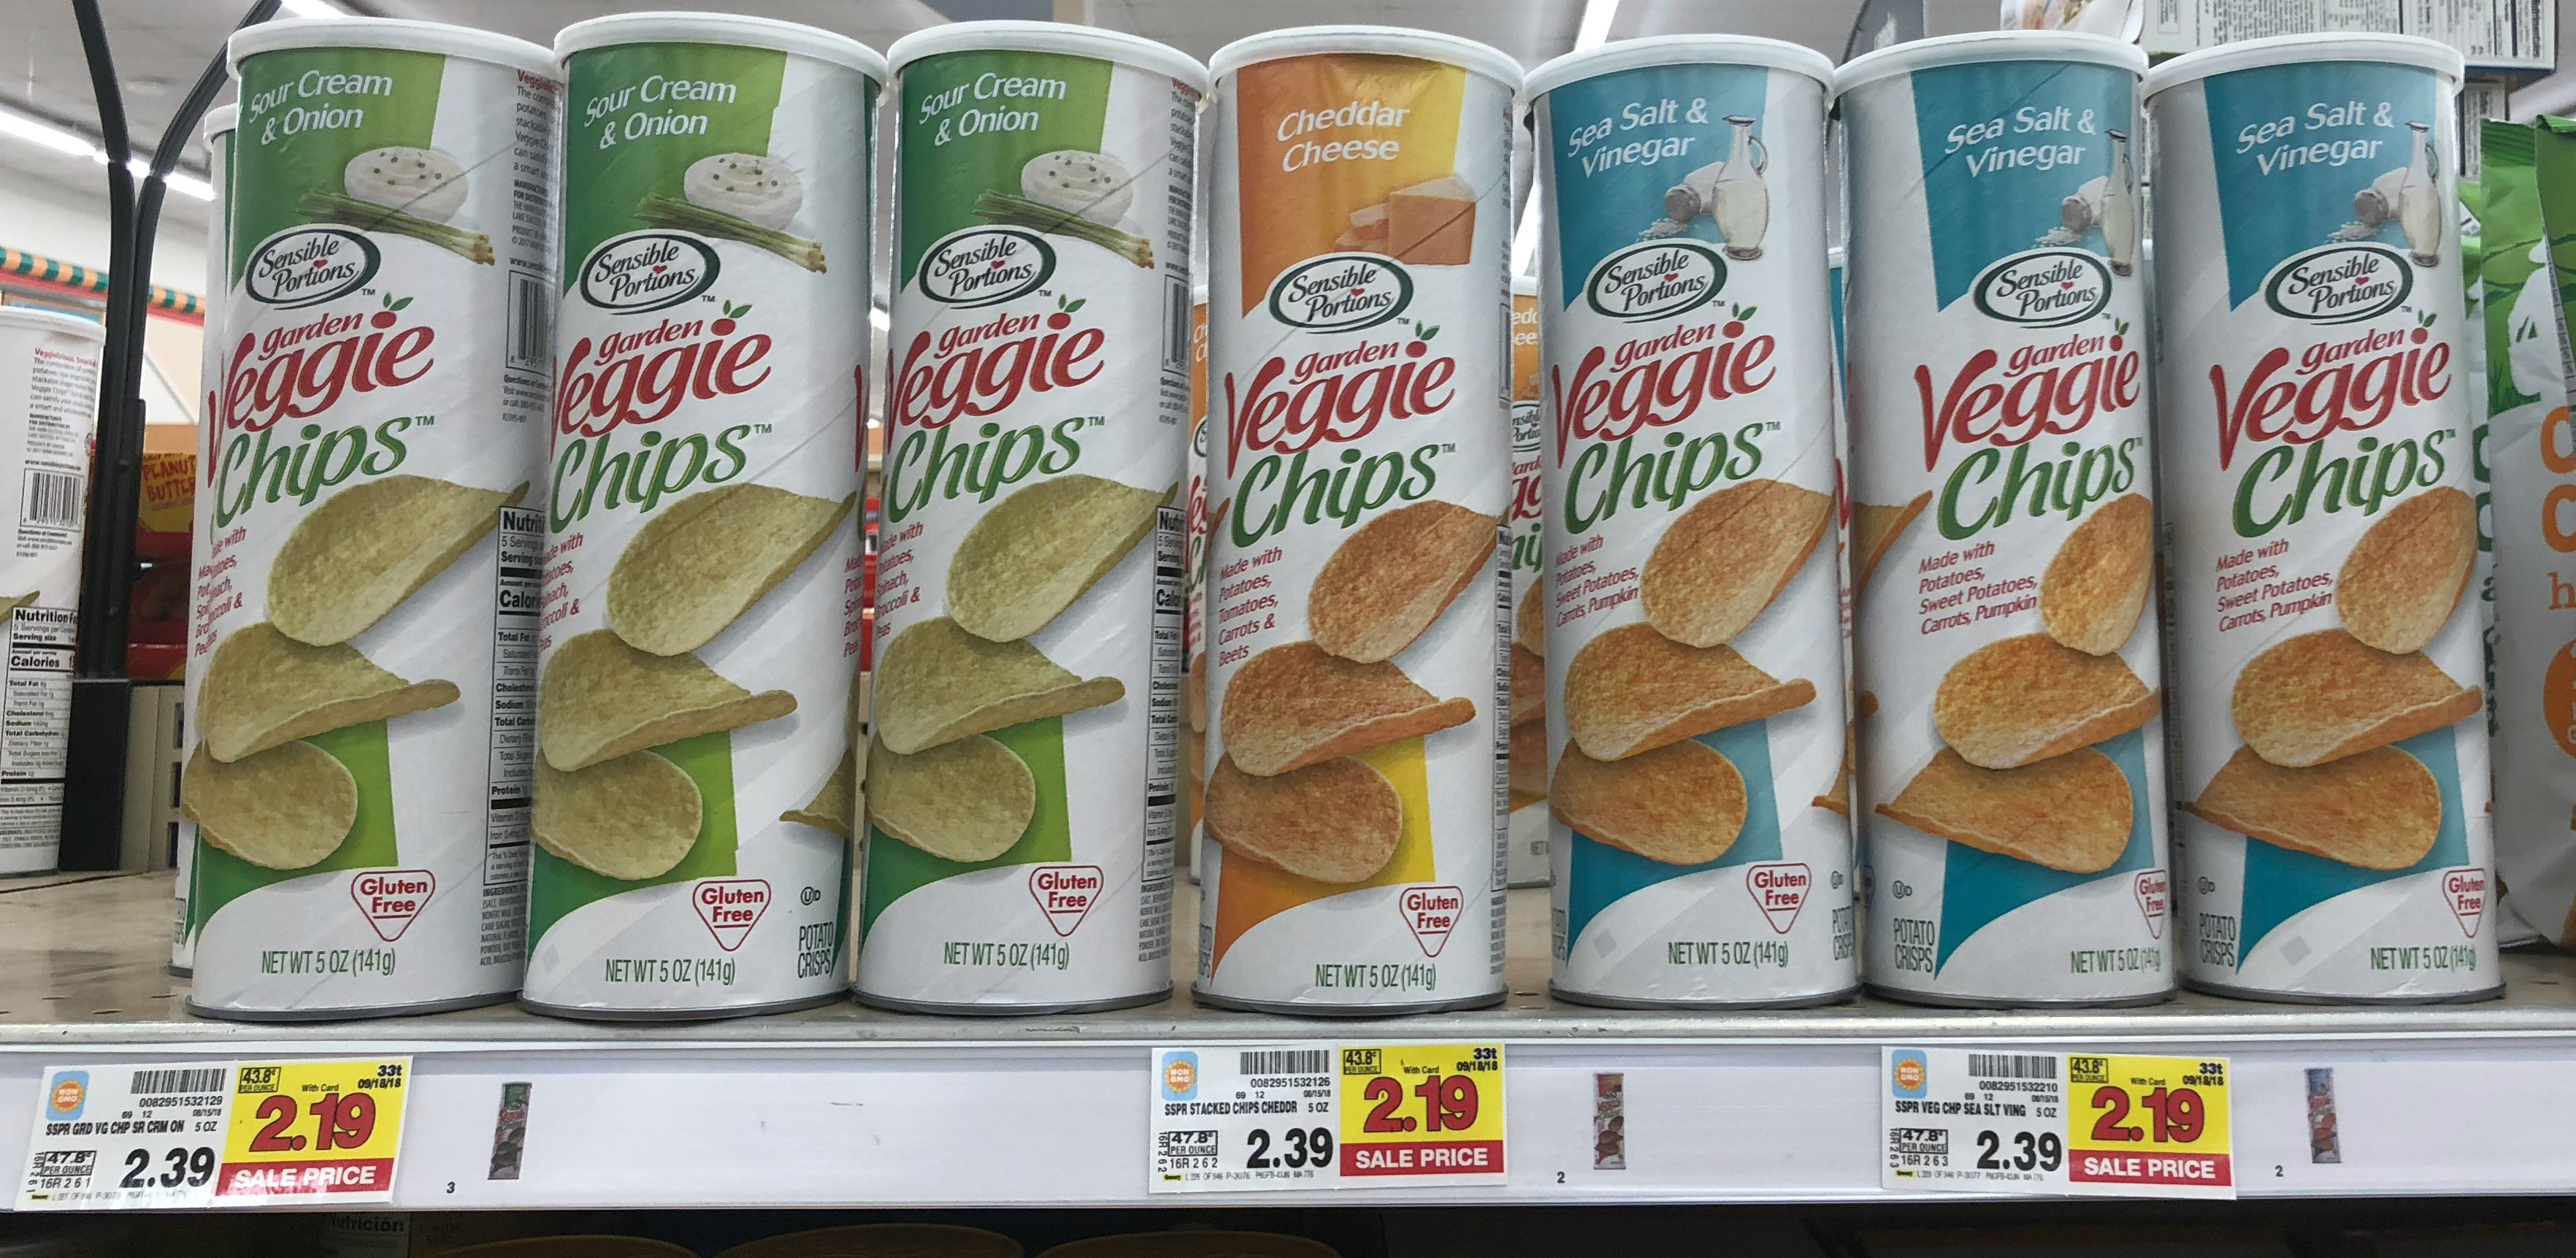 Image result for veggie chips tin can